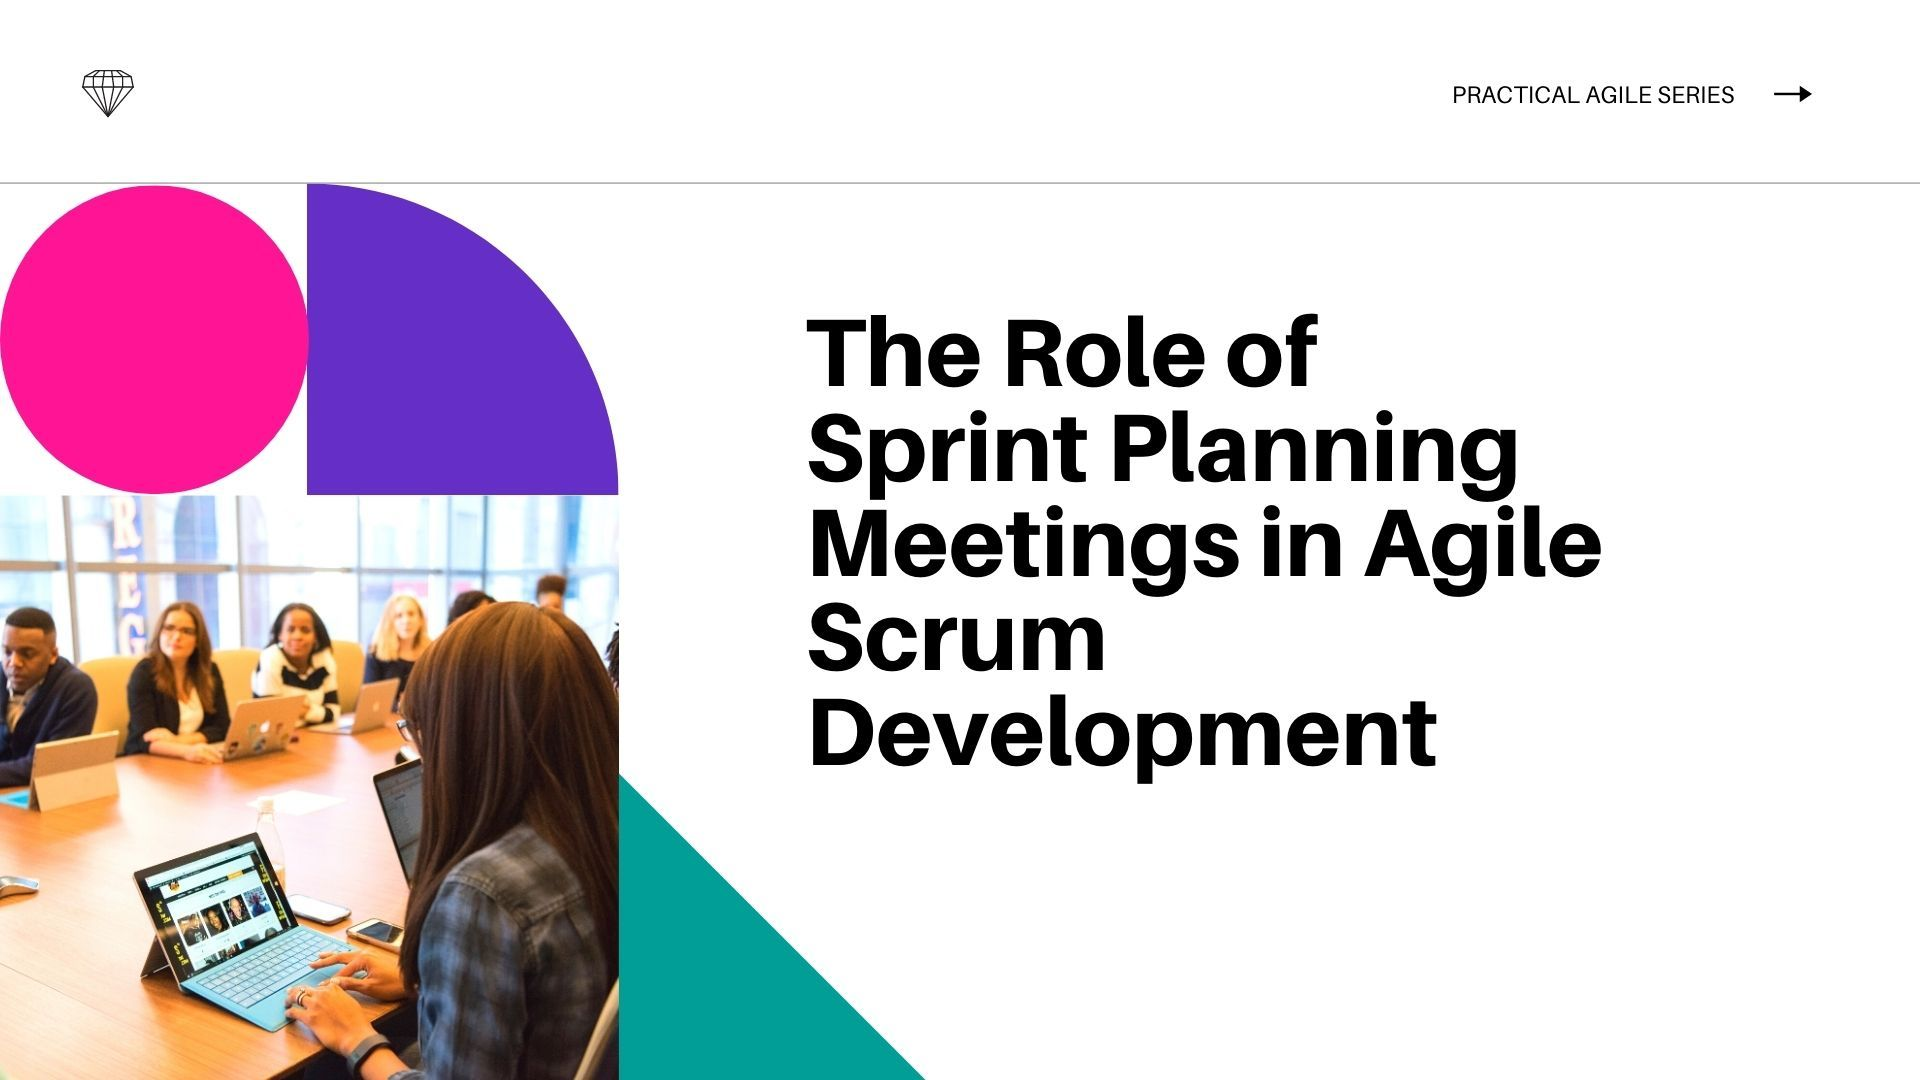 The Role of Sprint Planning Meetings in Agile Scrum Development